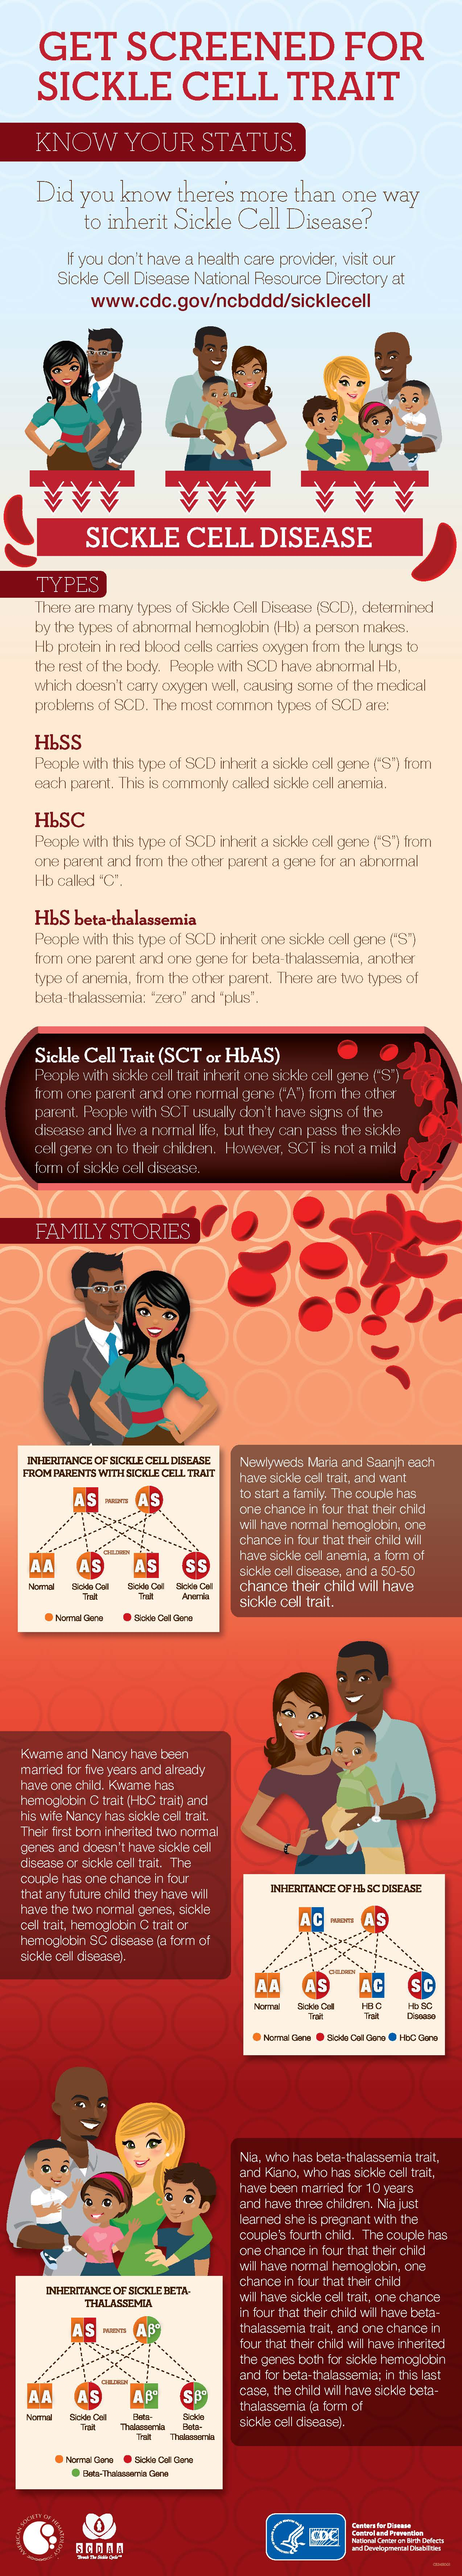 Sickle Cell graphic from Centers for Disease Control and Prevention